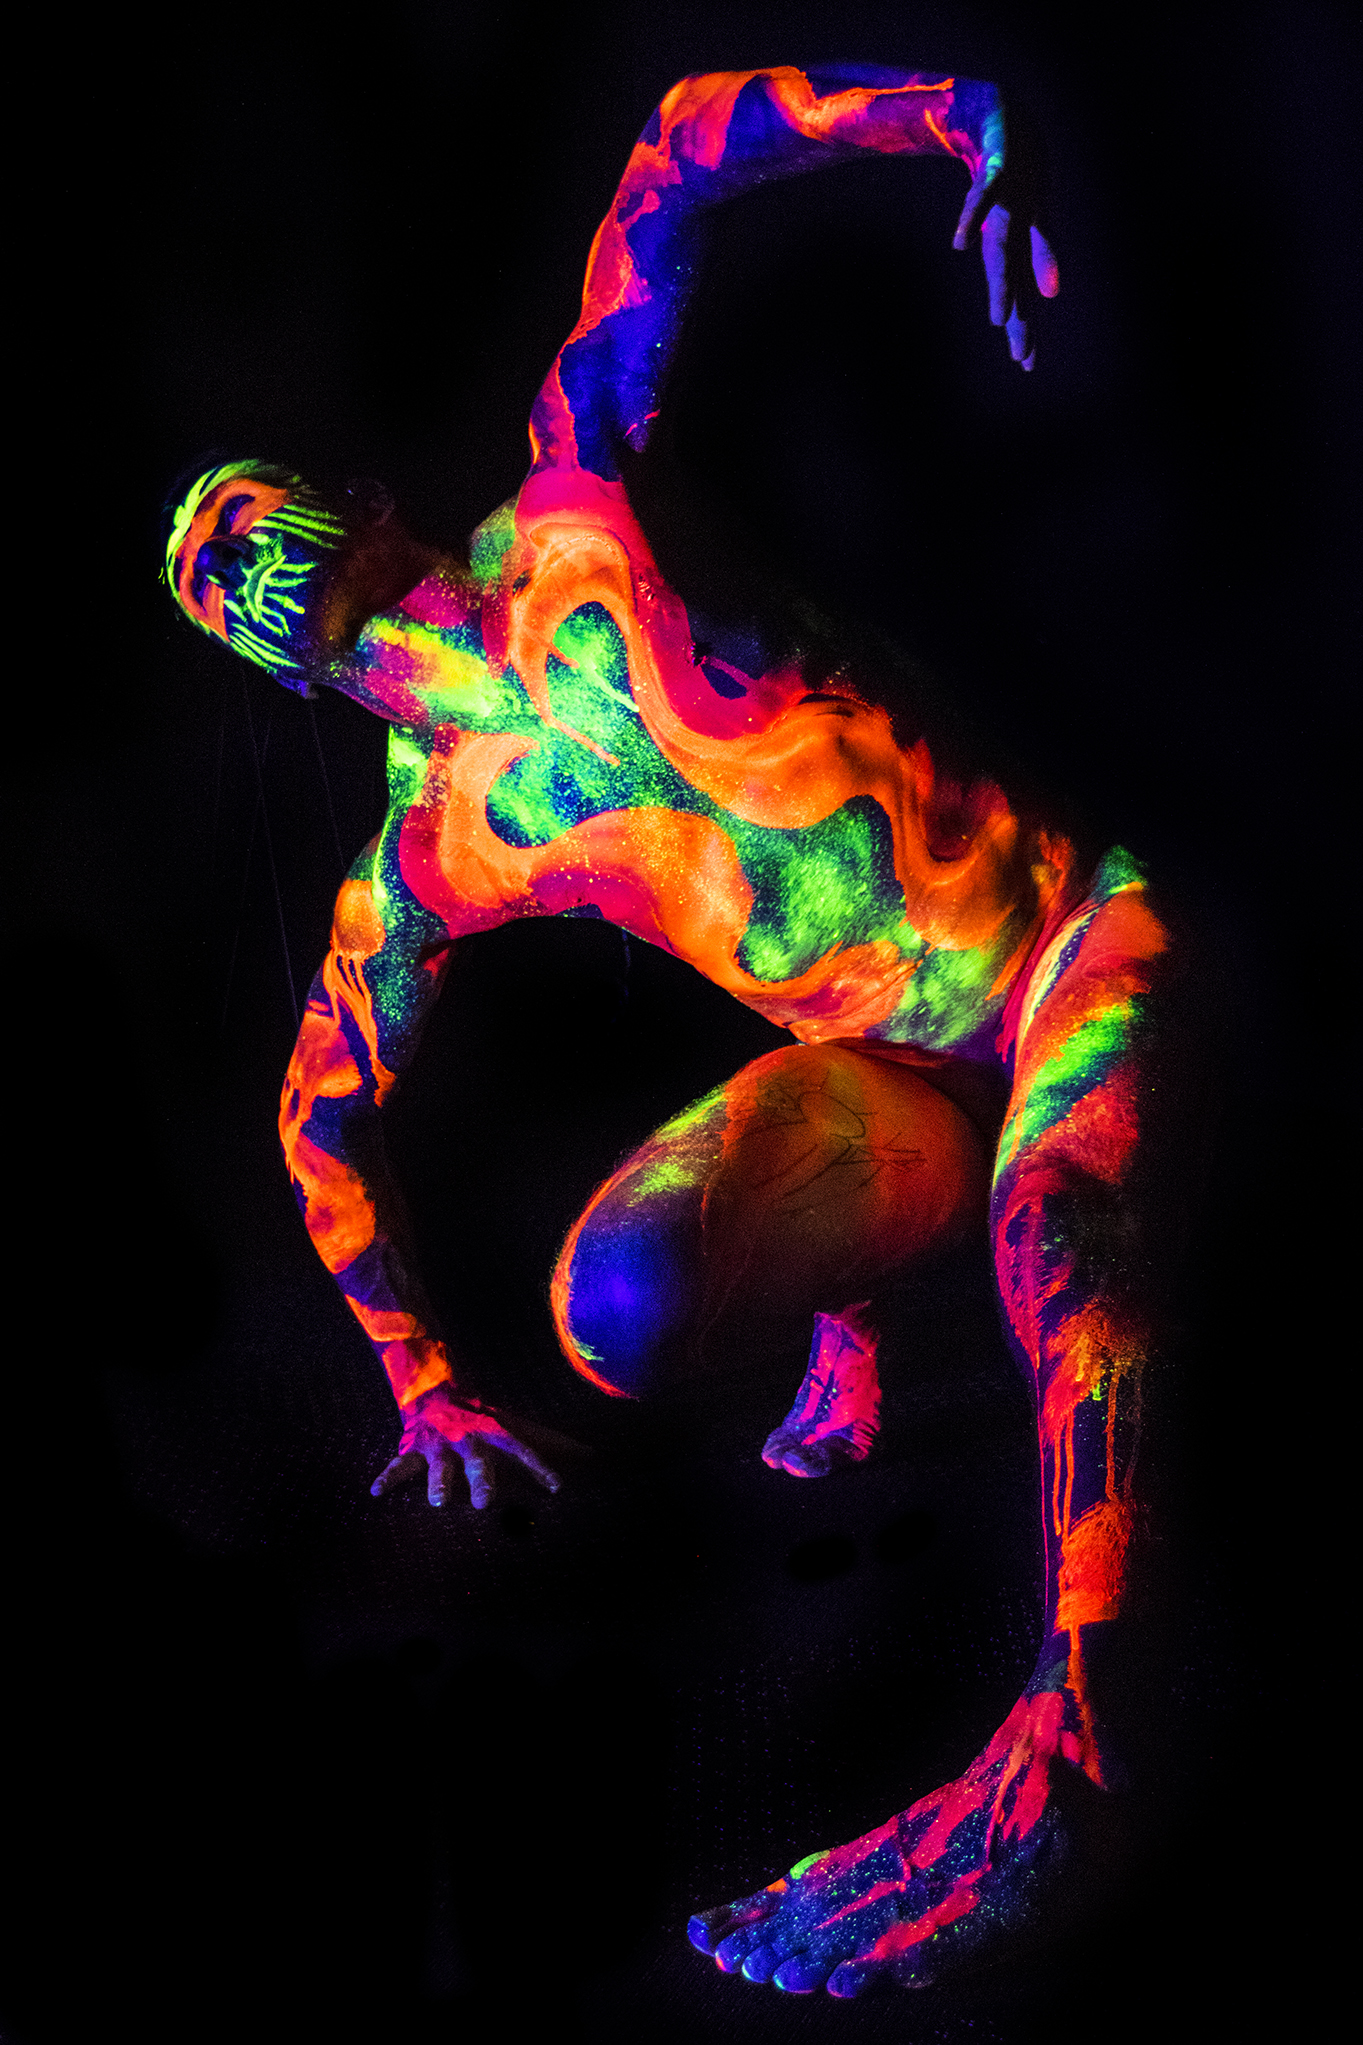 Joe modelling for Neon Naked.